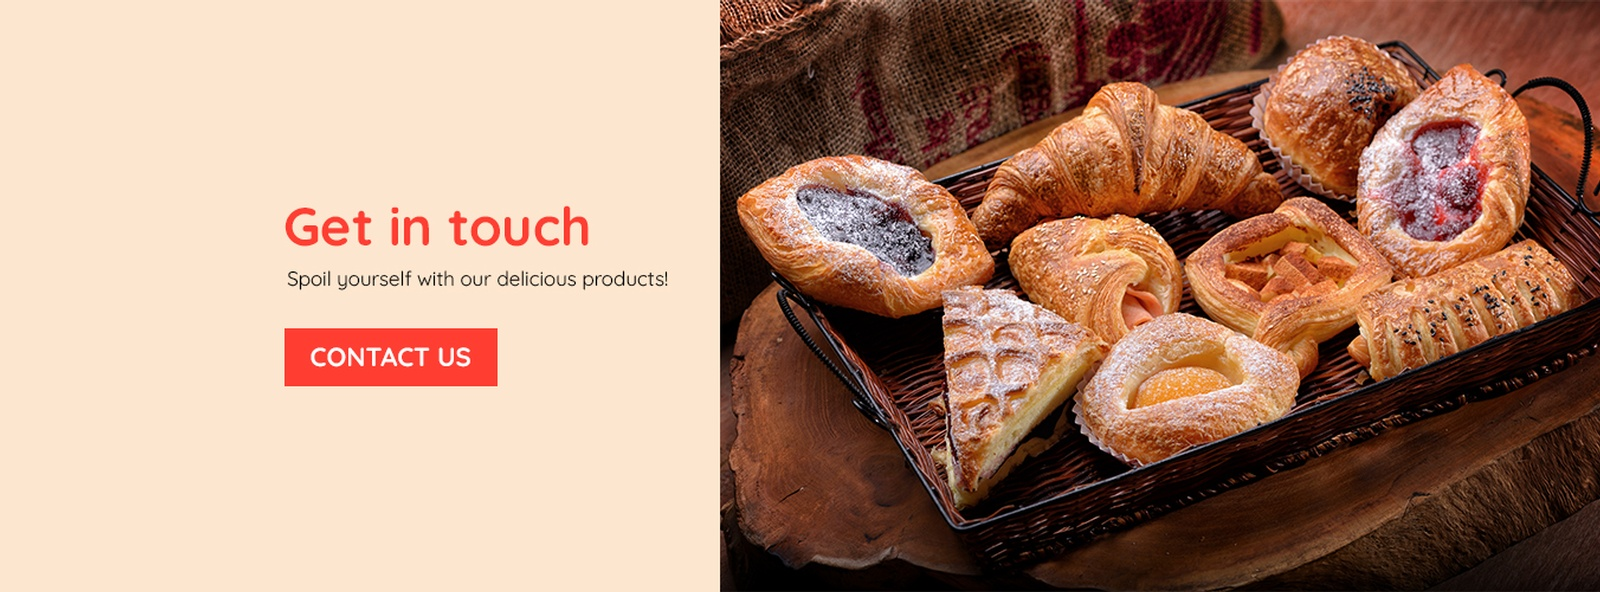 Get in touch with Bernhard German Bakery and Deli - Best German Bakery